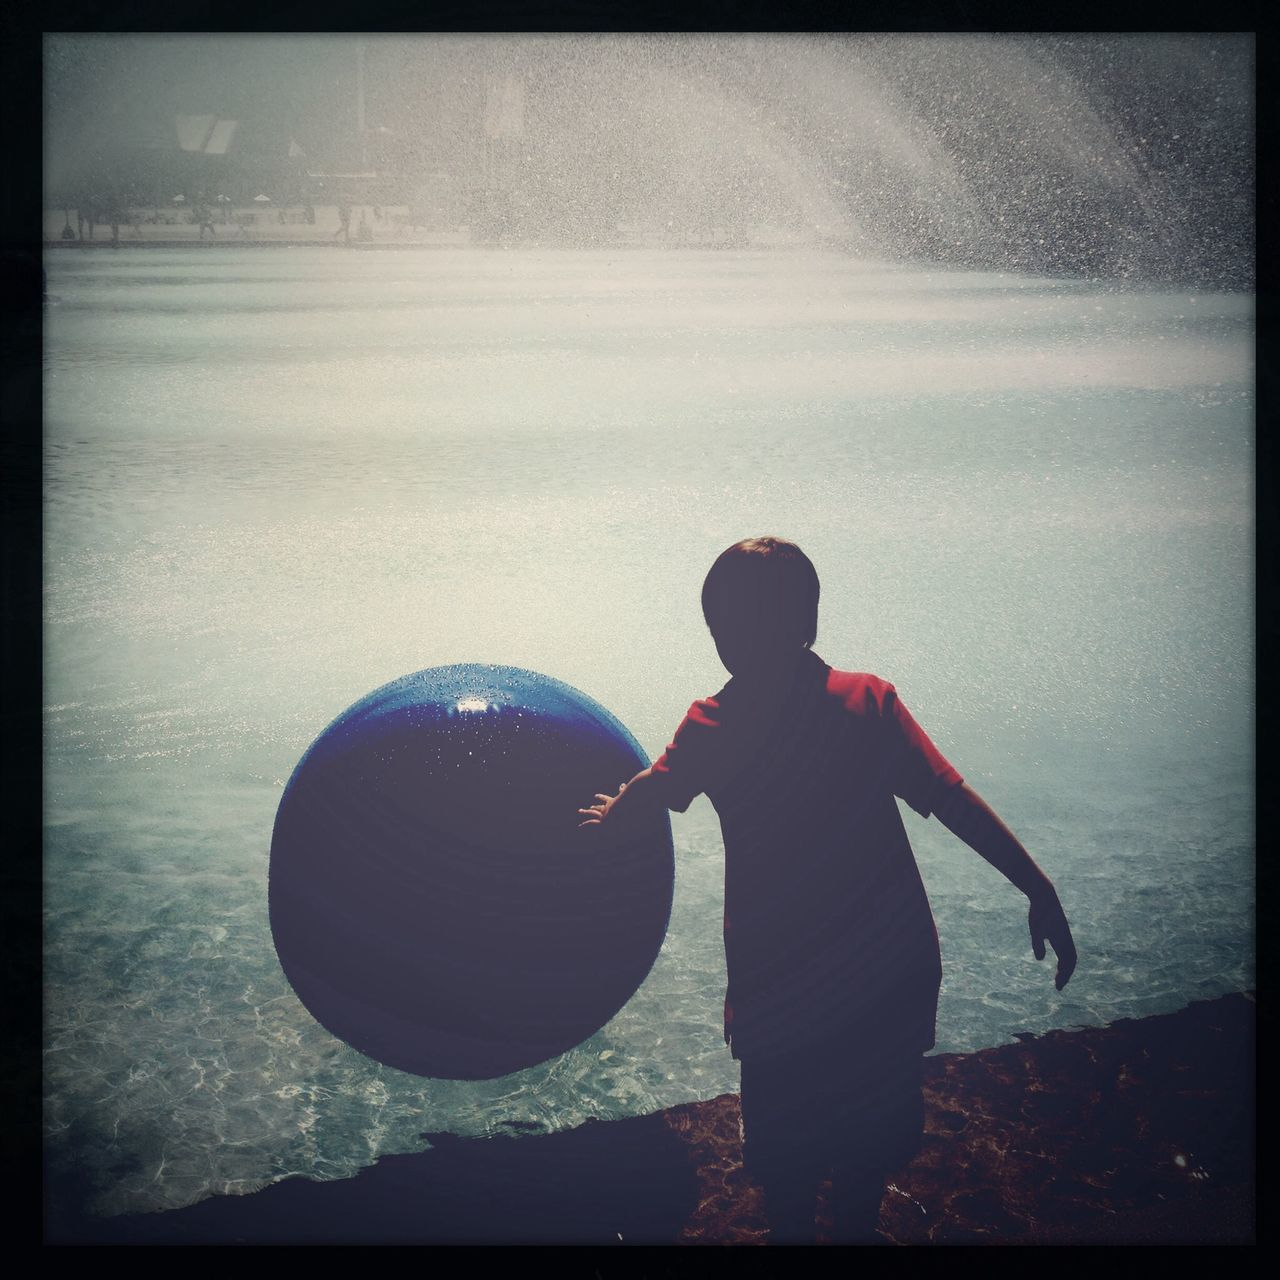 ball, standing, rear view, one person, real people, leisure activity, childhood, day, outdoors, full length, sky, nature, people